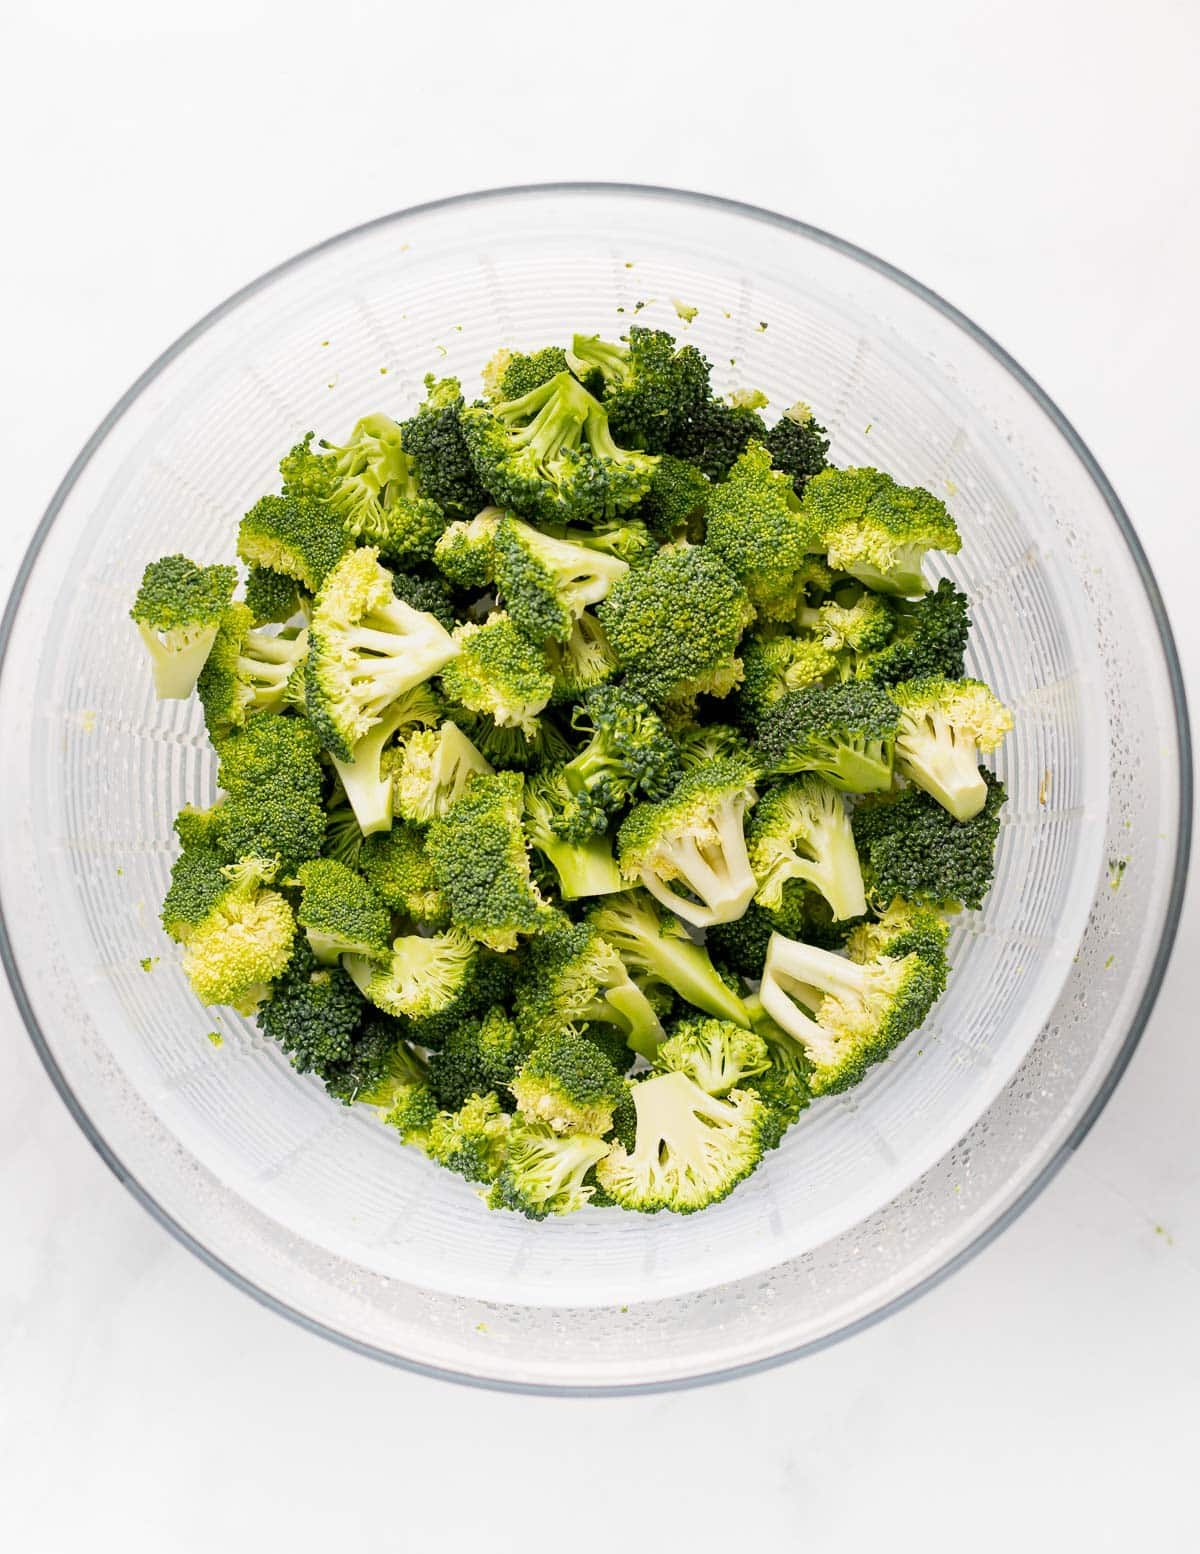 a bowl of broccoli florets